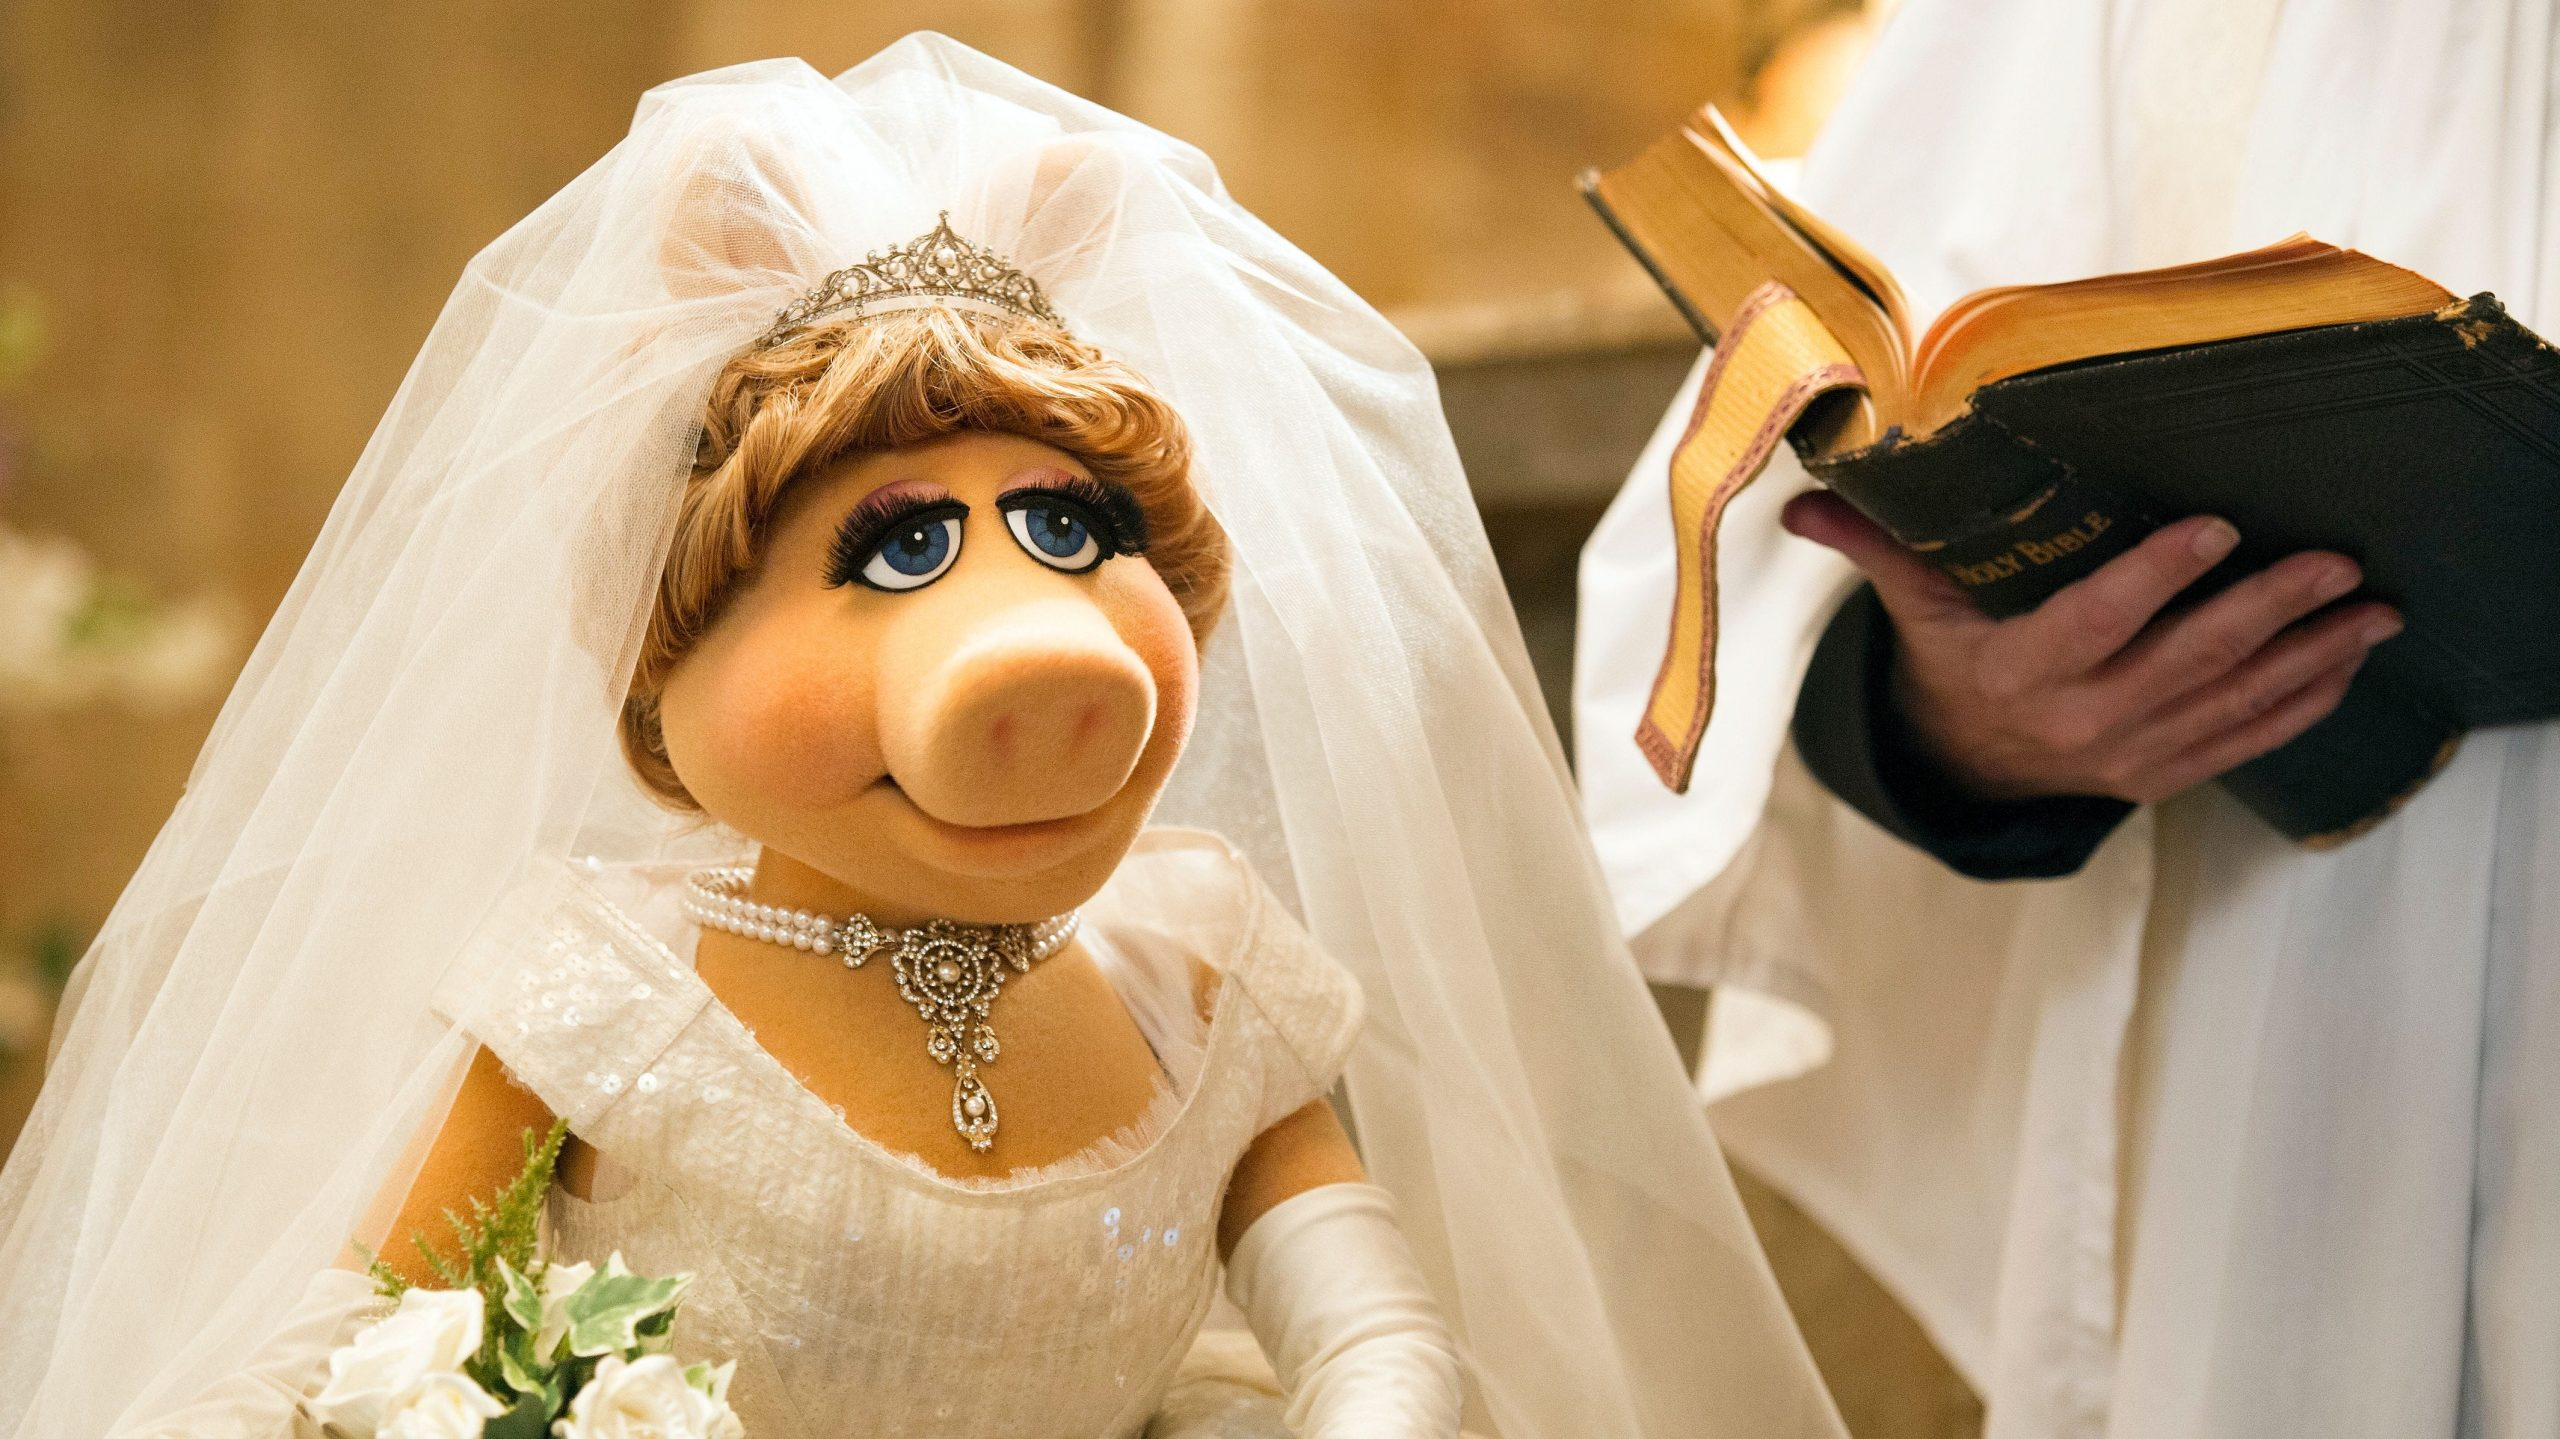 17b scaled The Muppets: The Adult Origins Of 'Mahna Mahna' And More Things You Didn't Know